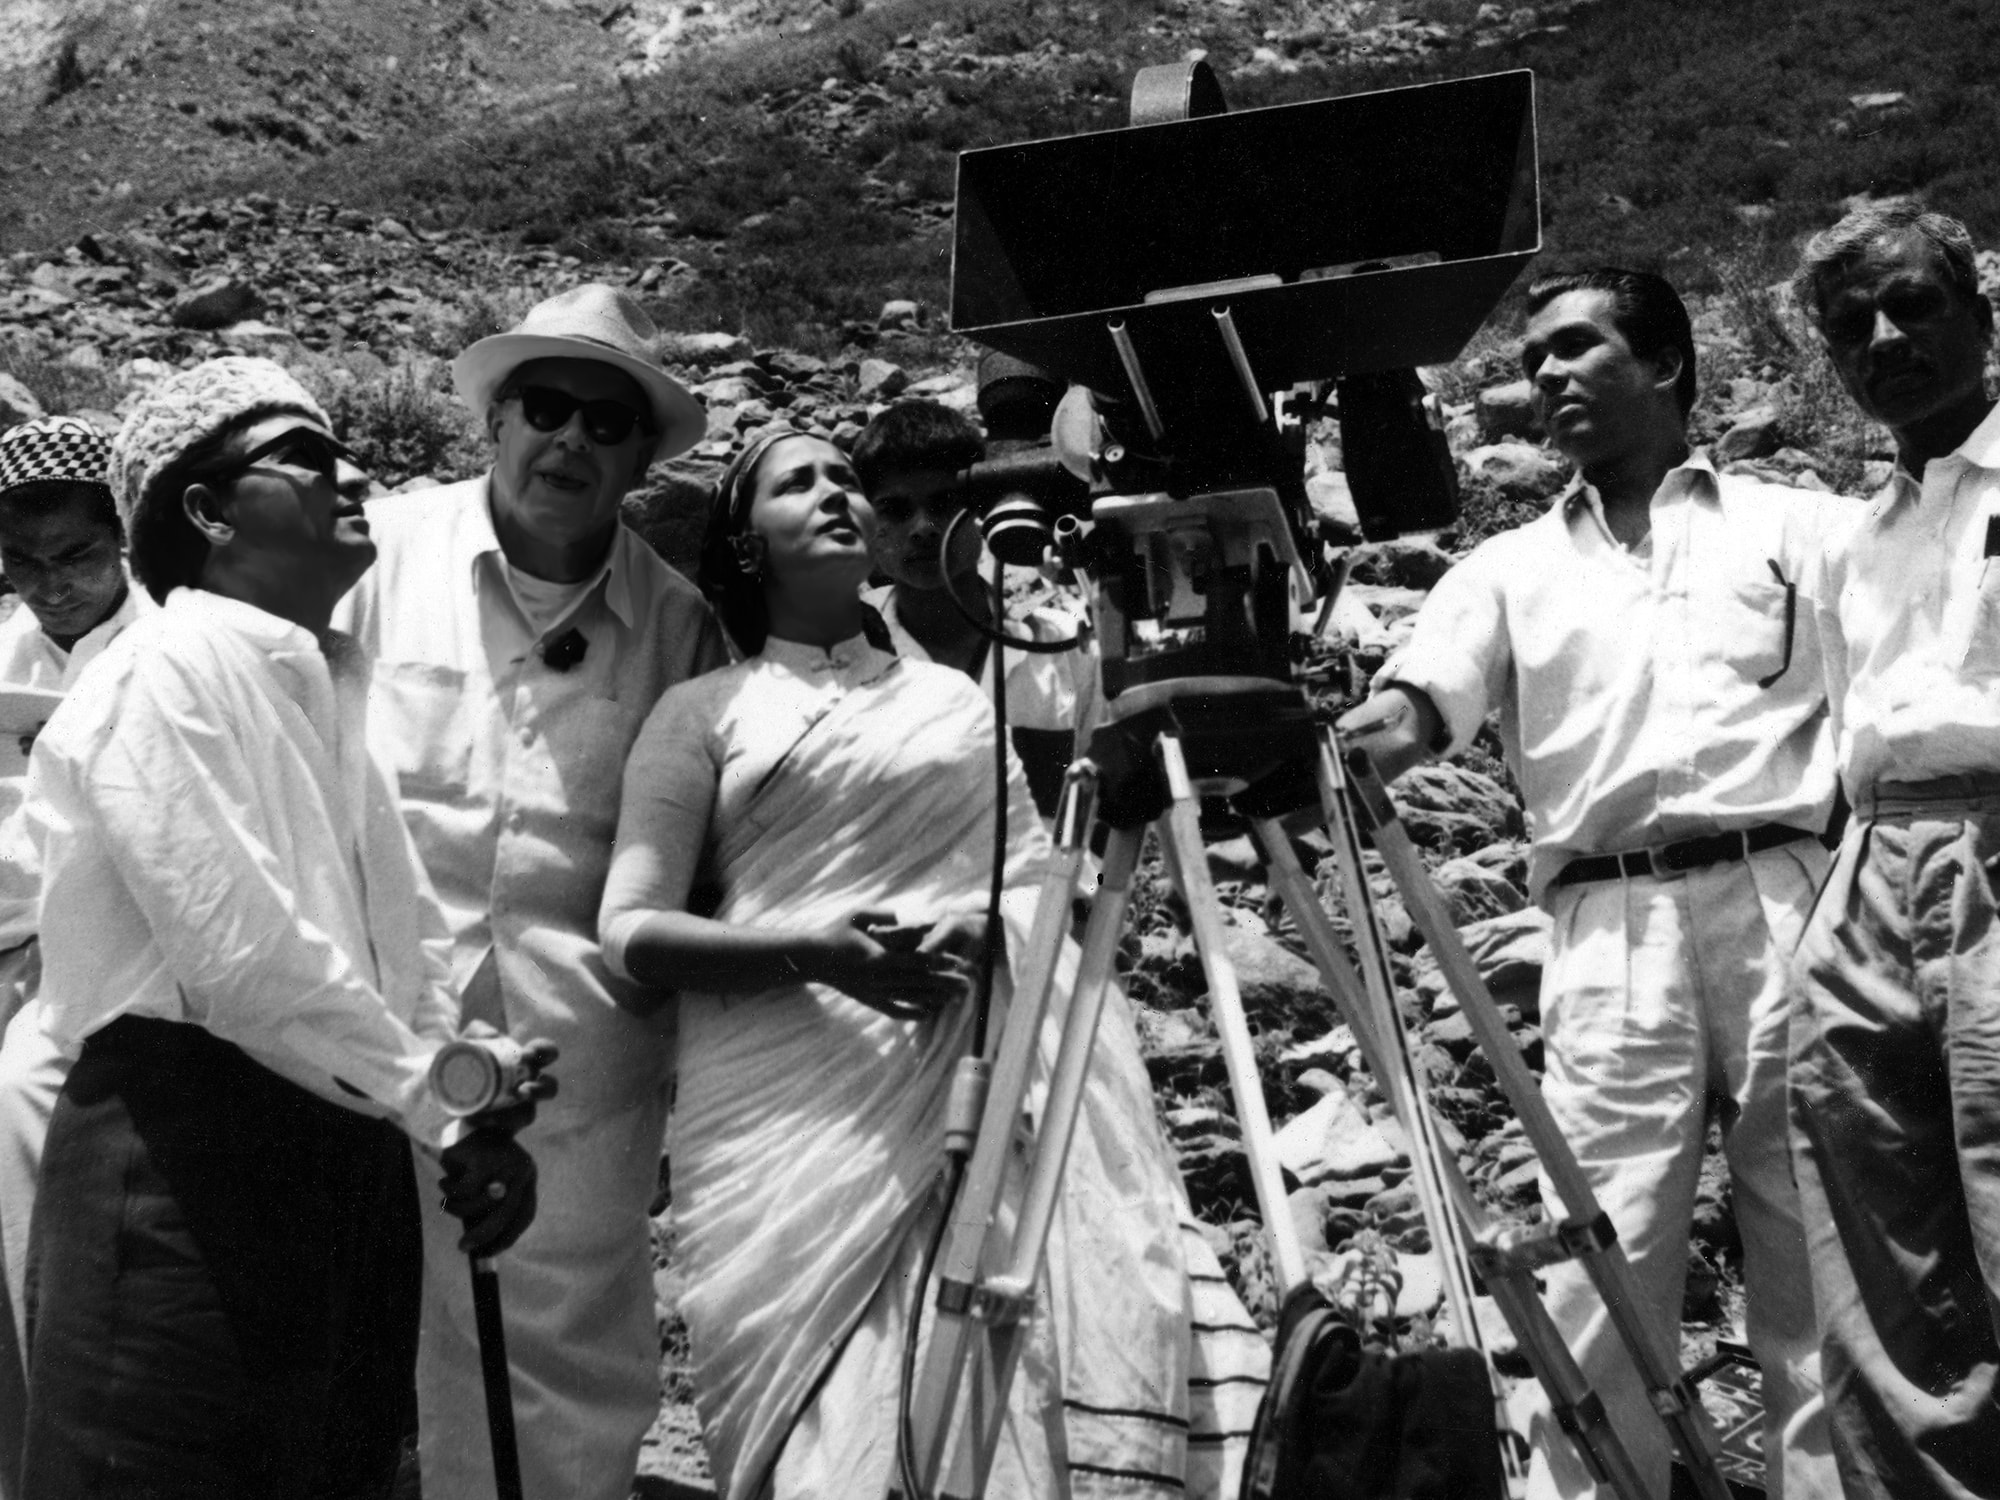 Kamal Amrohi, Josef Wirsching, Meena Kumari and a few of Josef's assistants on an outdoor shoot in Kashmir for the filming of Dil apna aur Preet Parai which was released in 1959-min